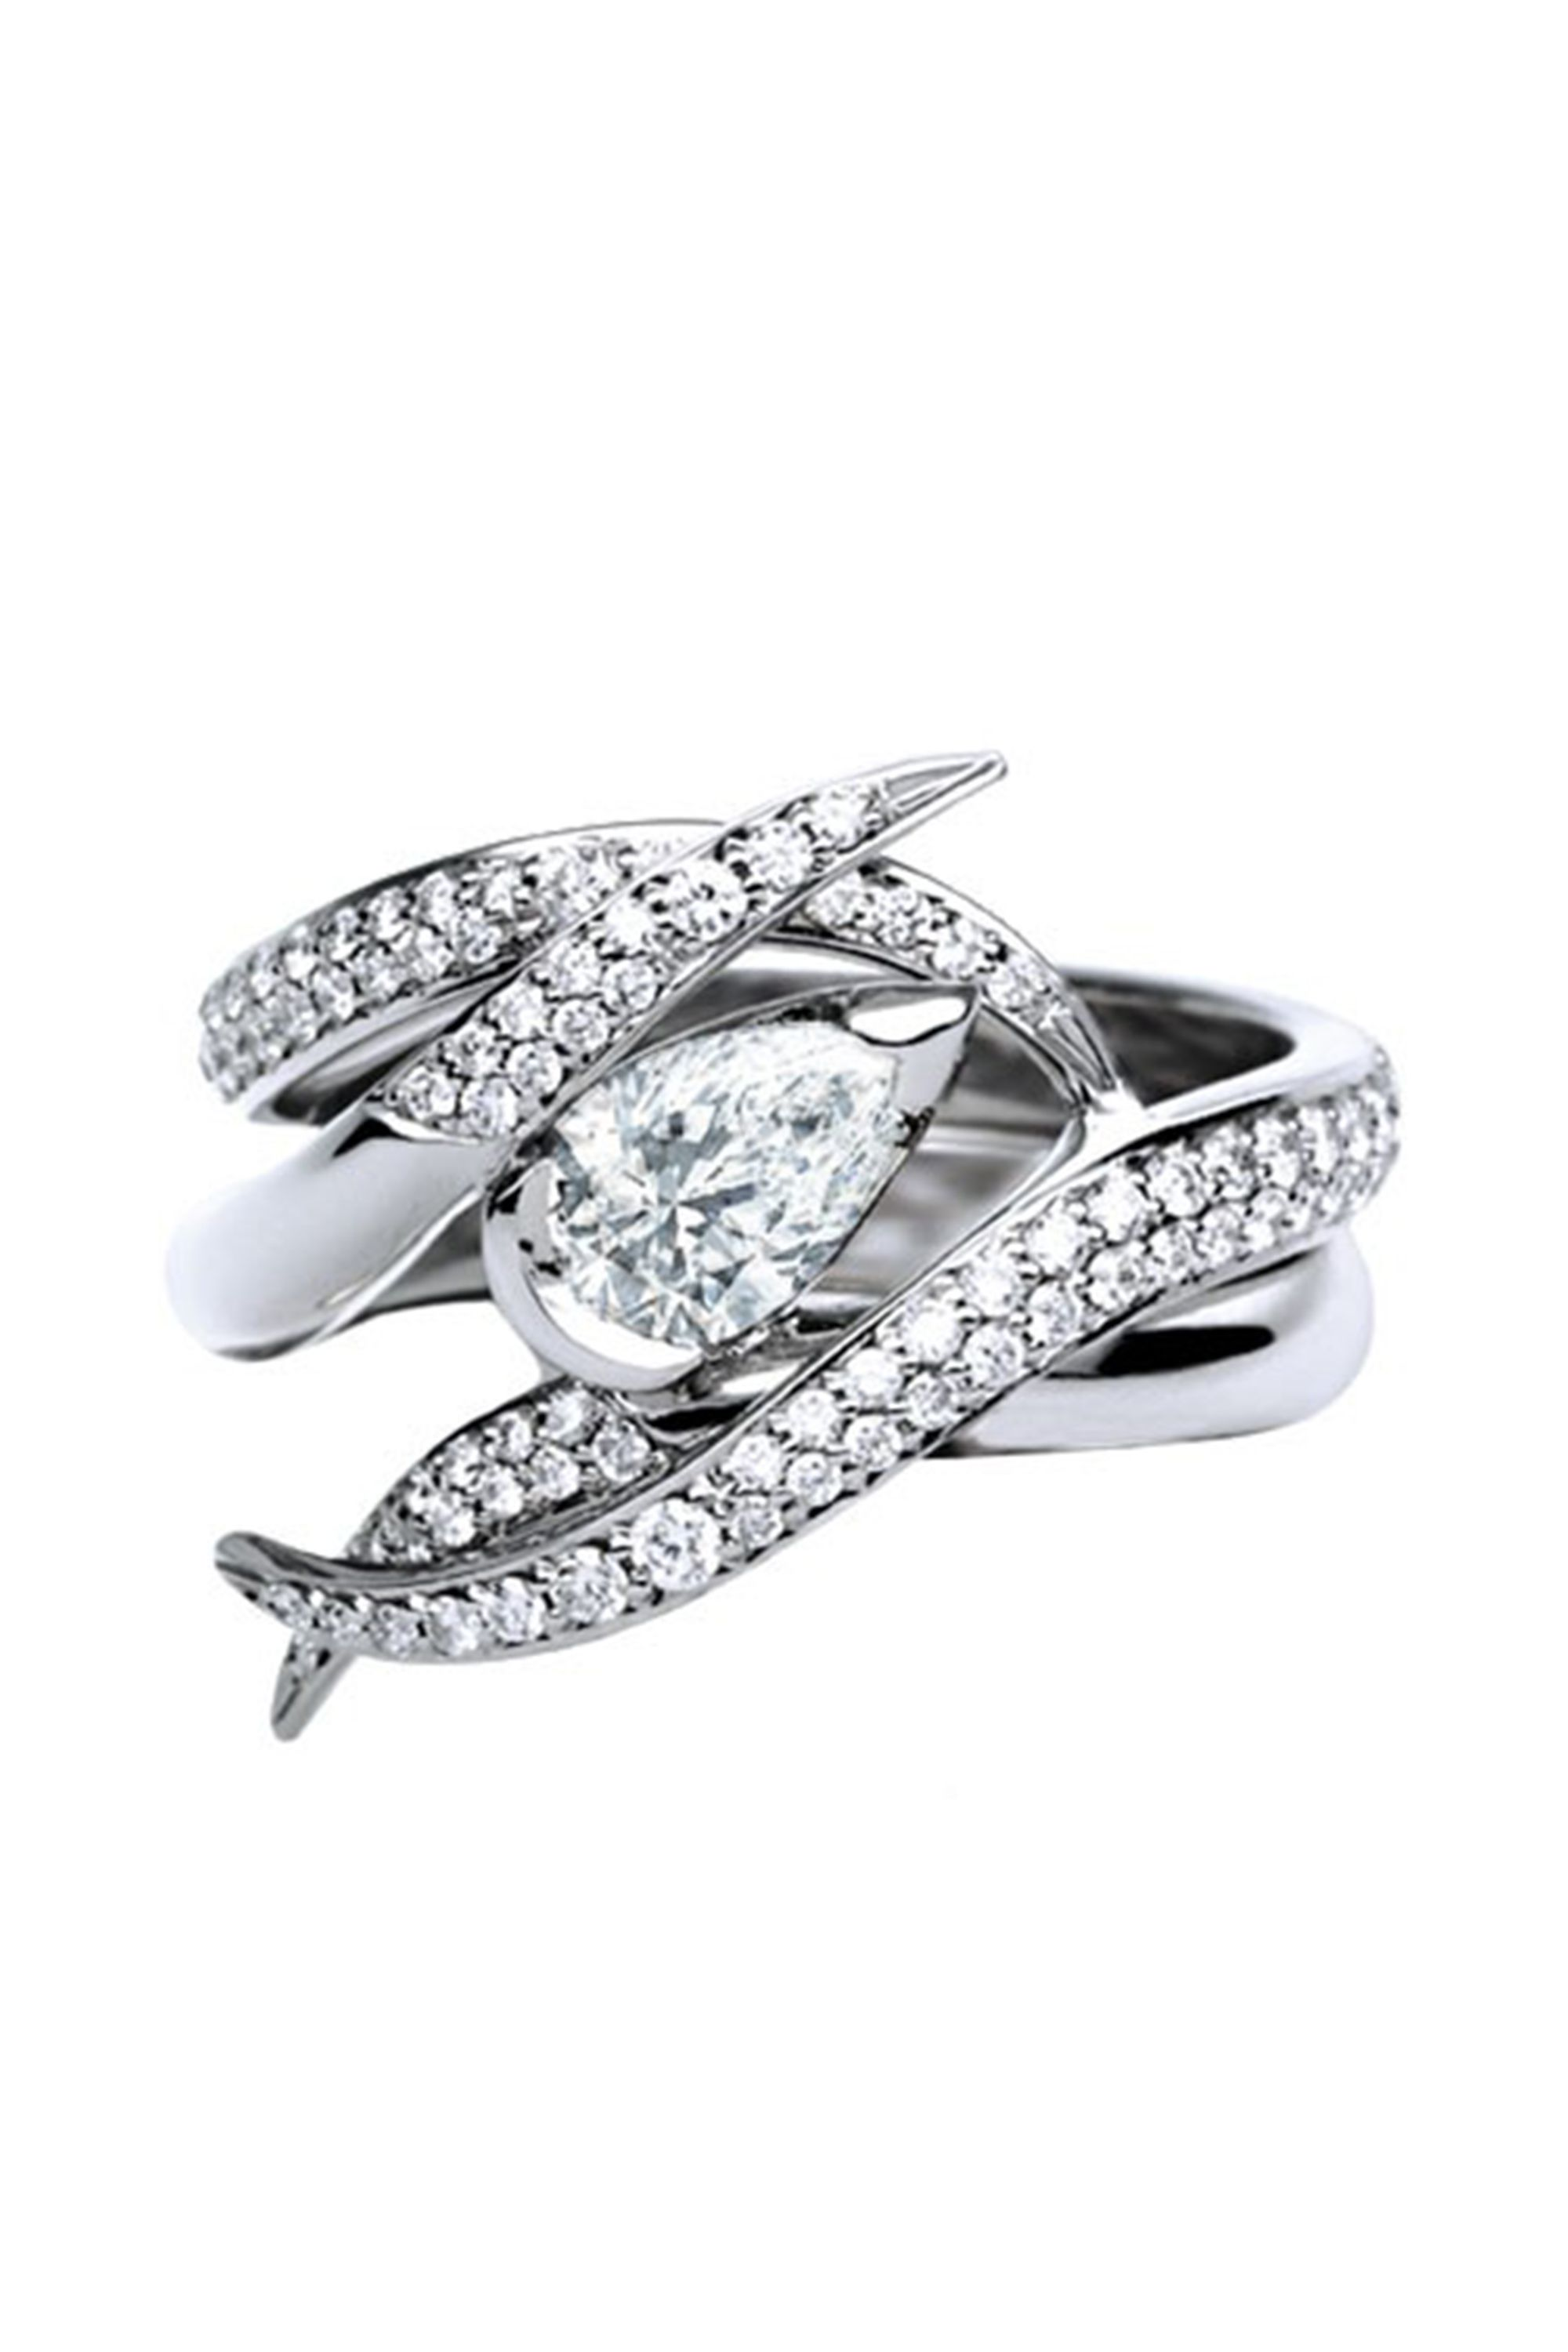 elegant ring attachment most gallery rings full men for within million male expensive amazing dollar of view wedding